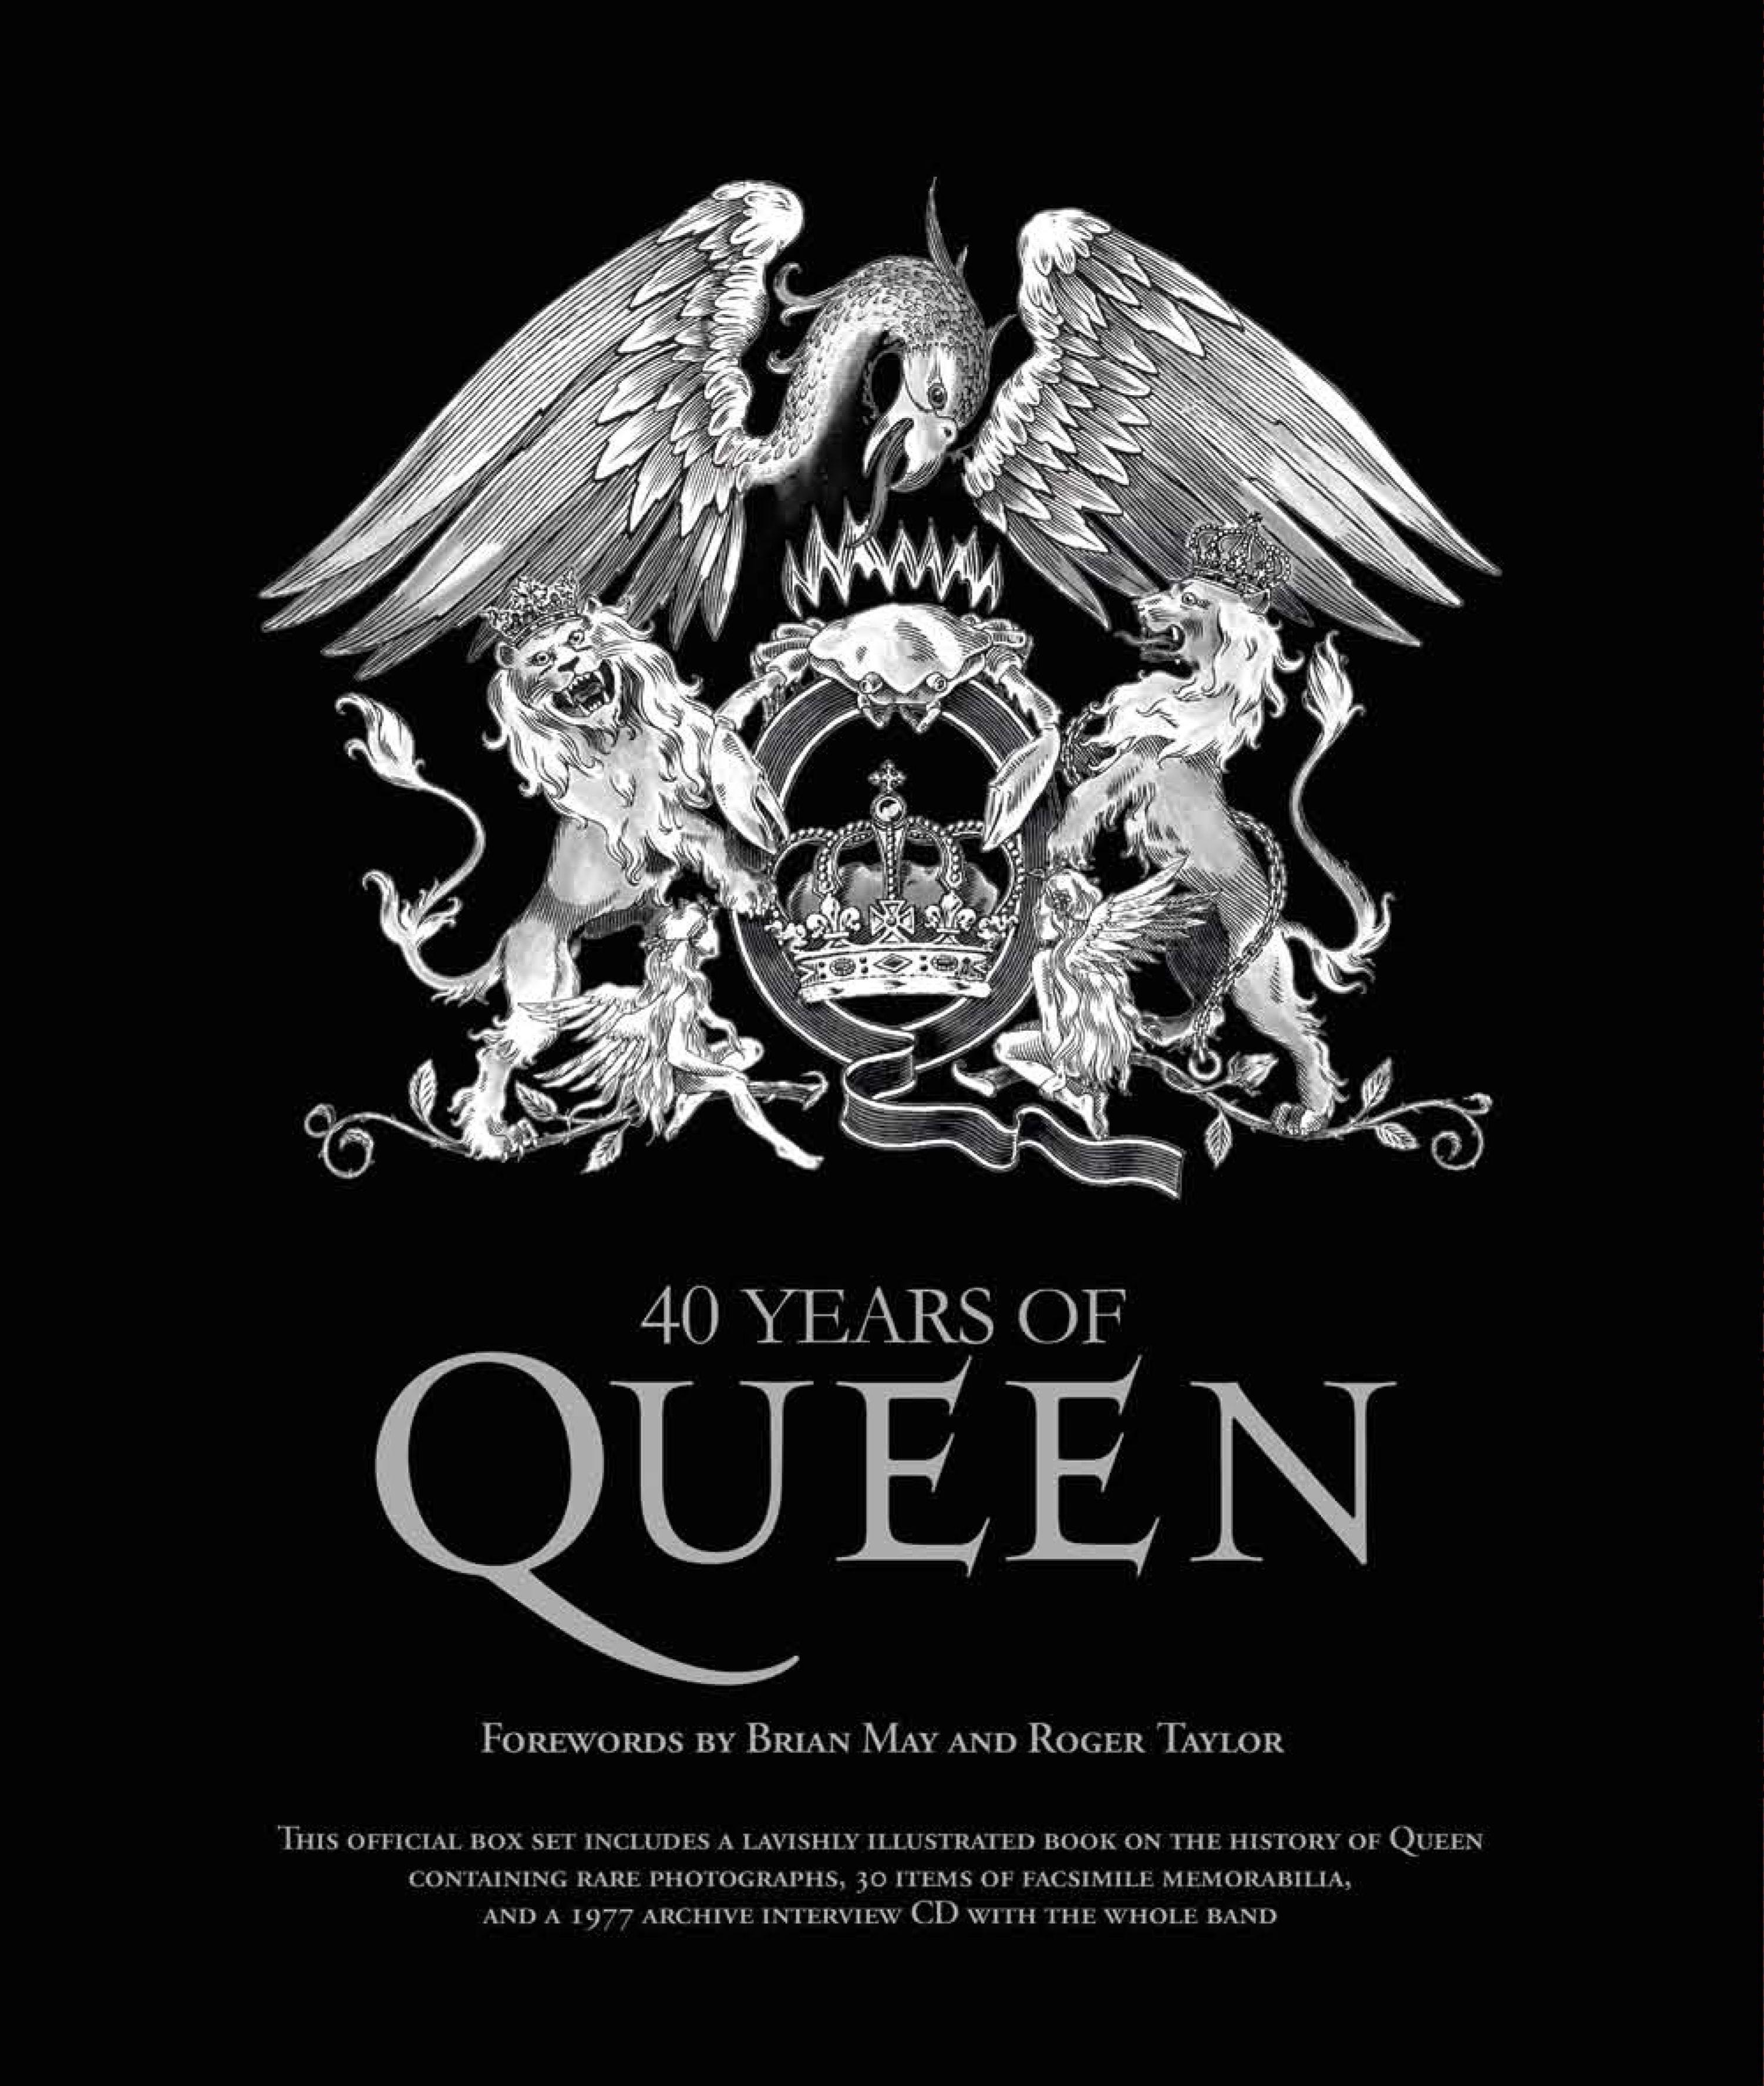 Check out this bargain at Queen poster, 40